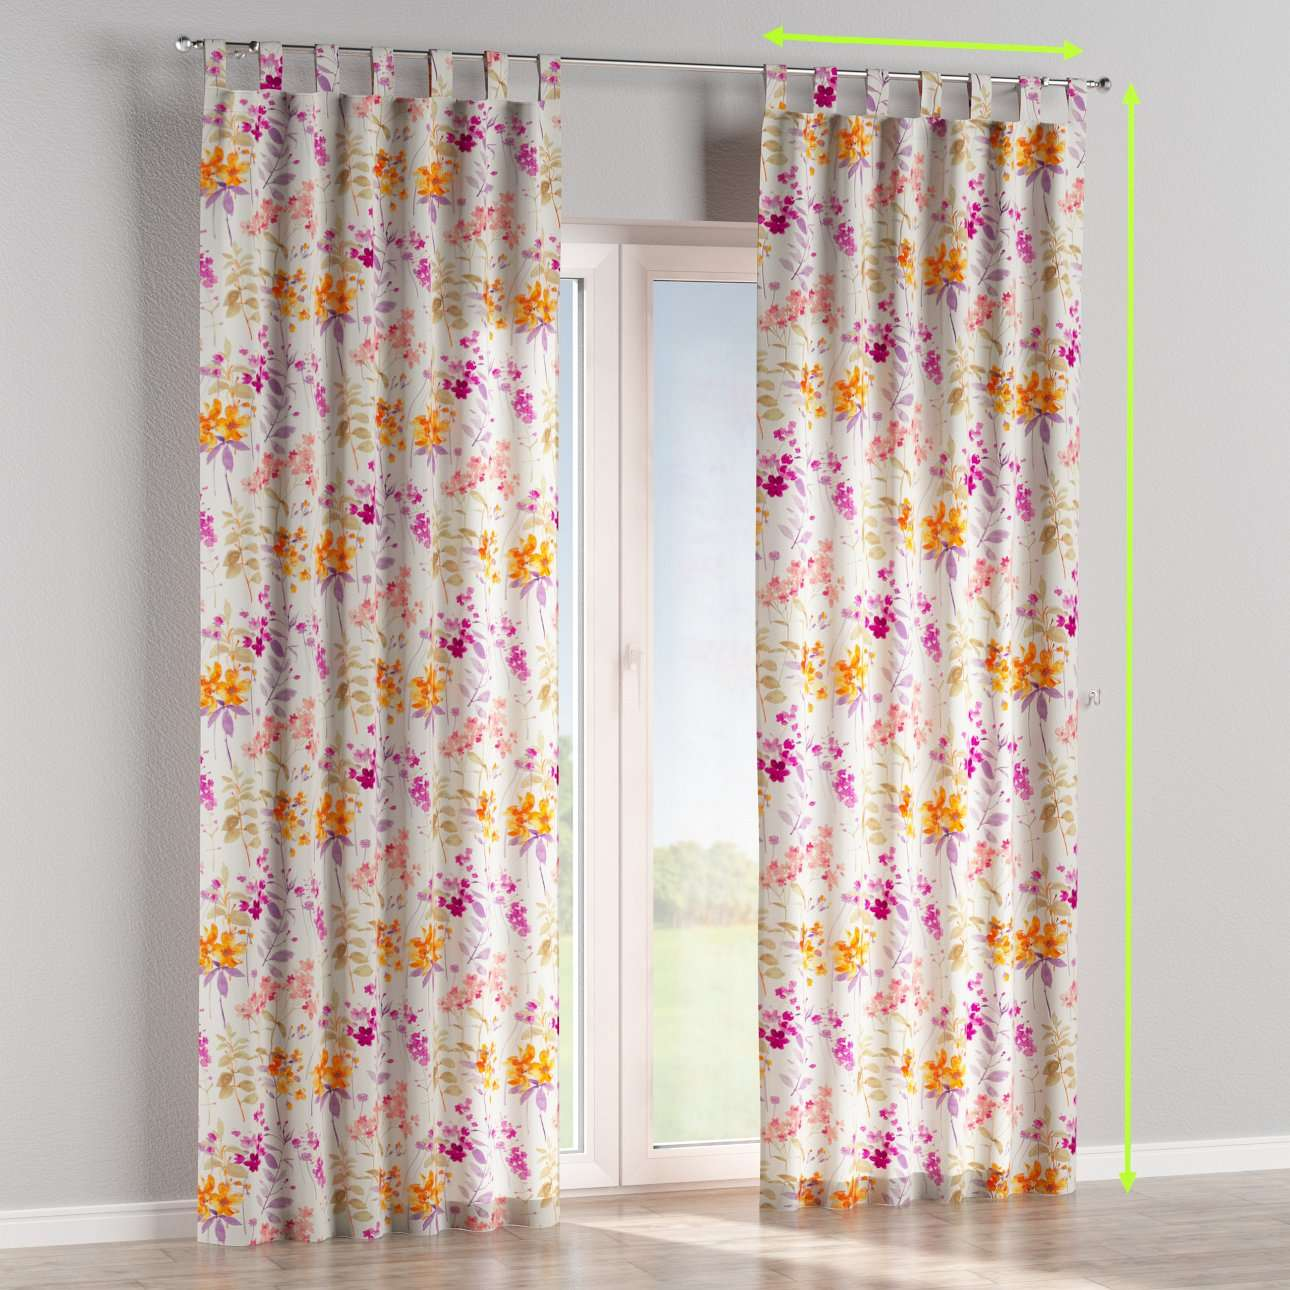 Tab top curtains in collection Monet, fabric: 140-04